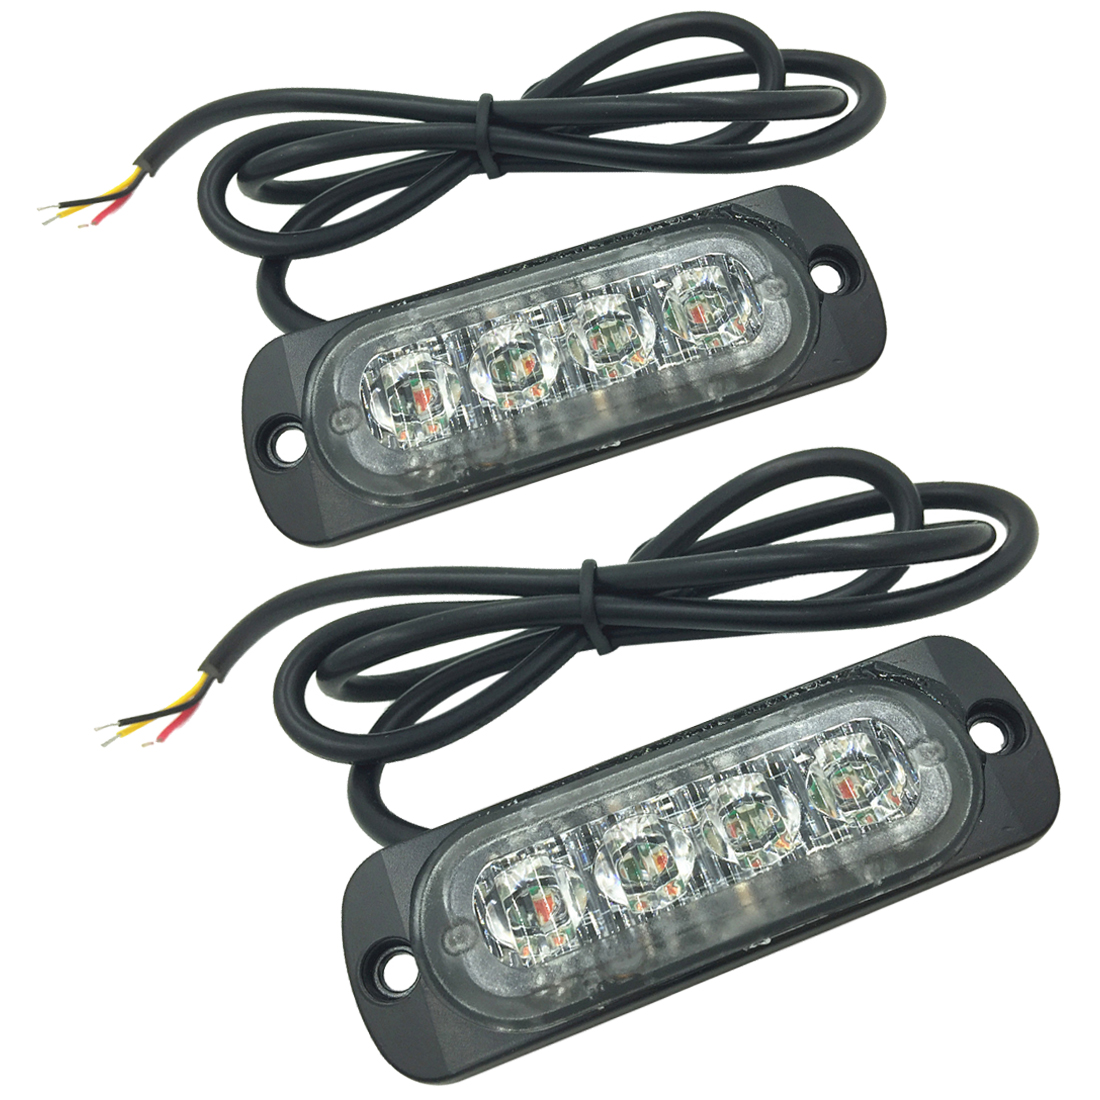 MOOL 2 X LED Car Truck Vehicle Emergency Recovery Flash Strobe Breakdown Light